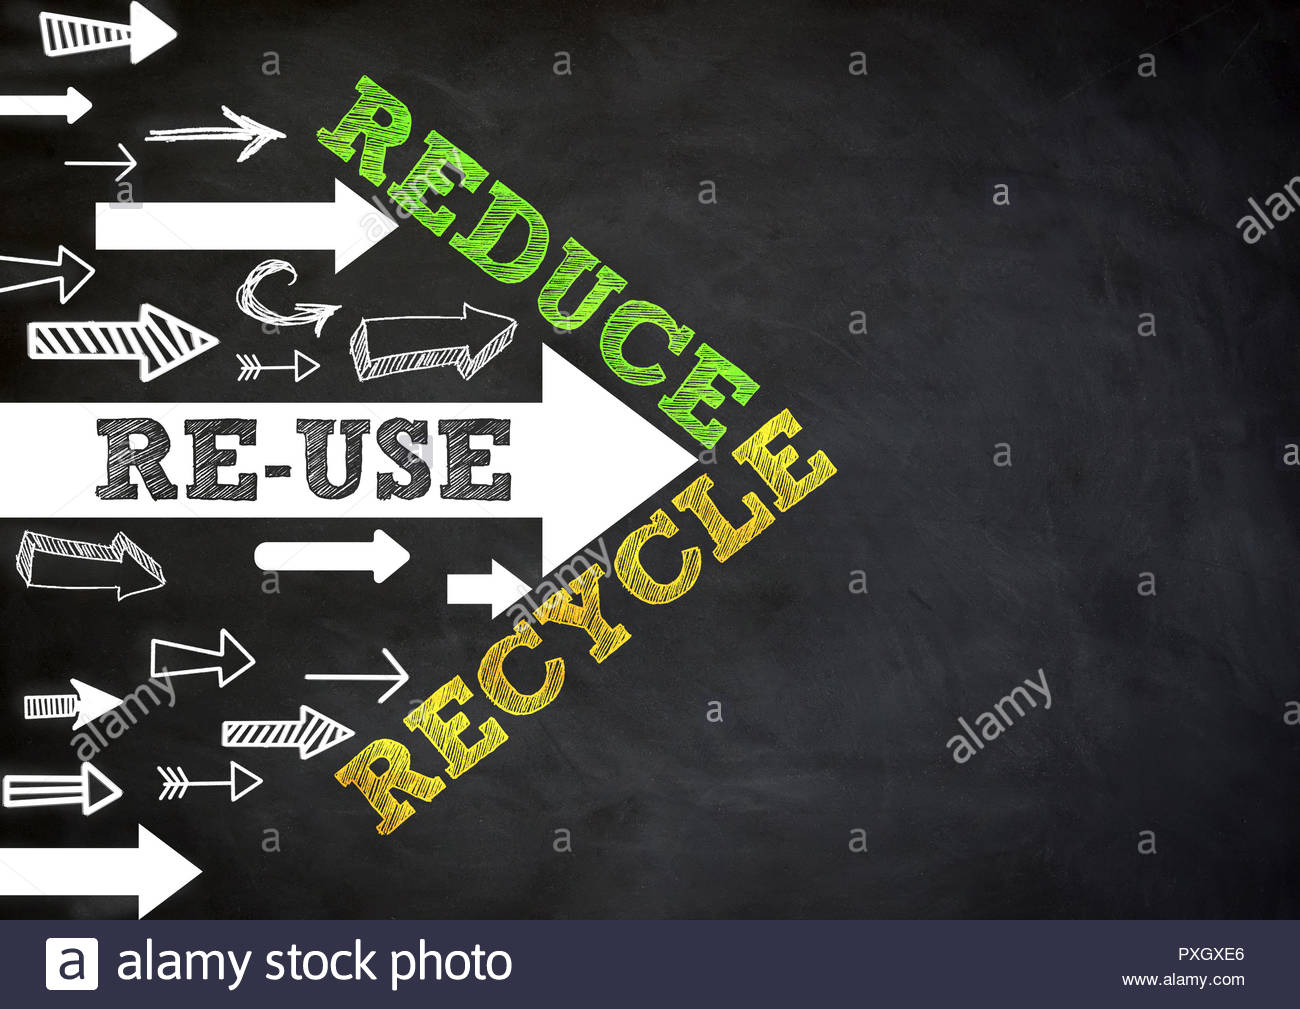 Reduce - Reuse - Recycle - Stock Image